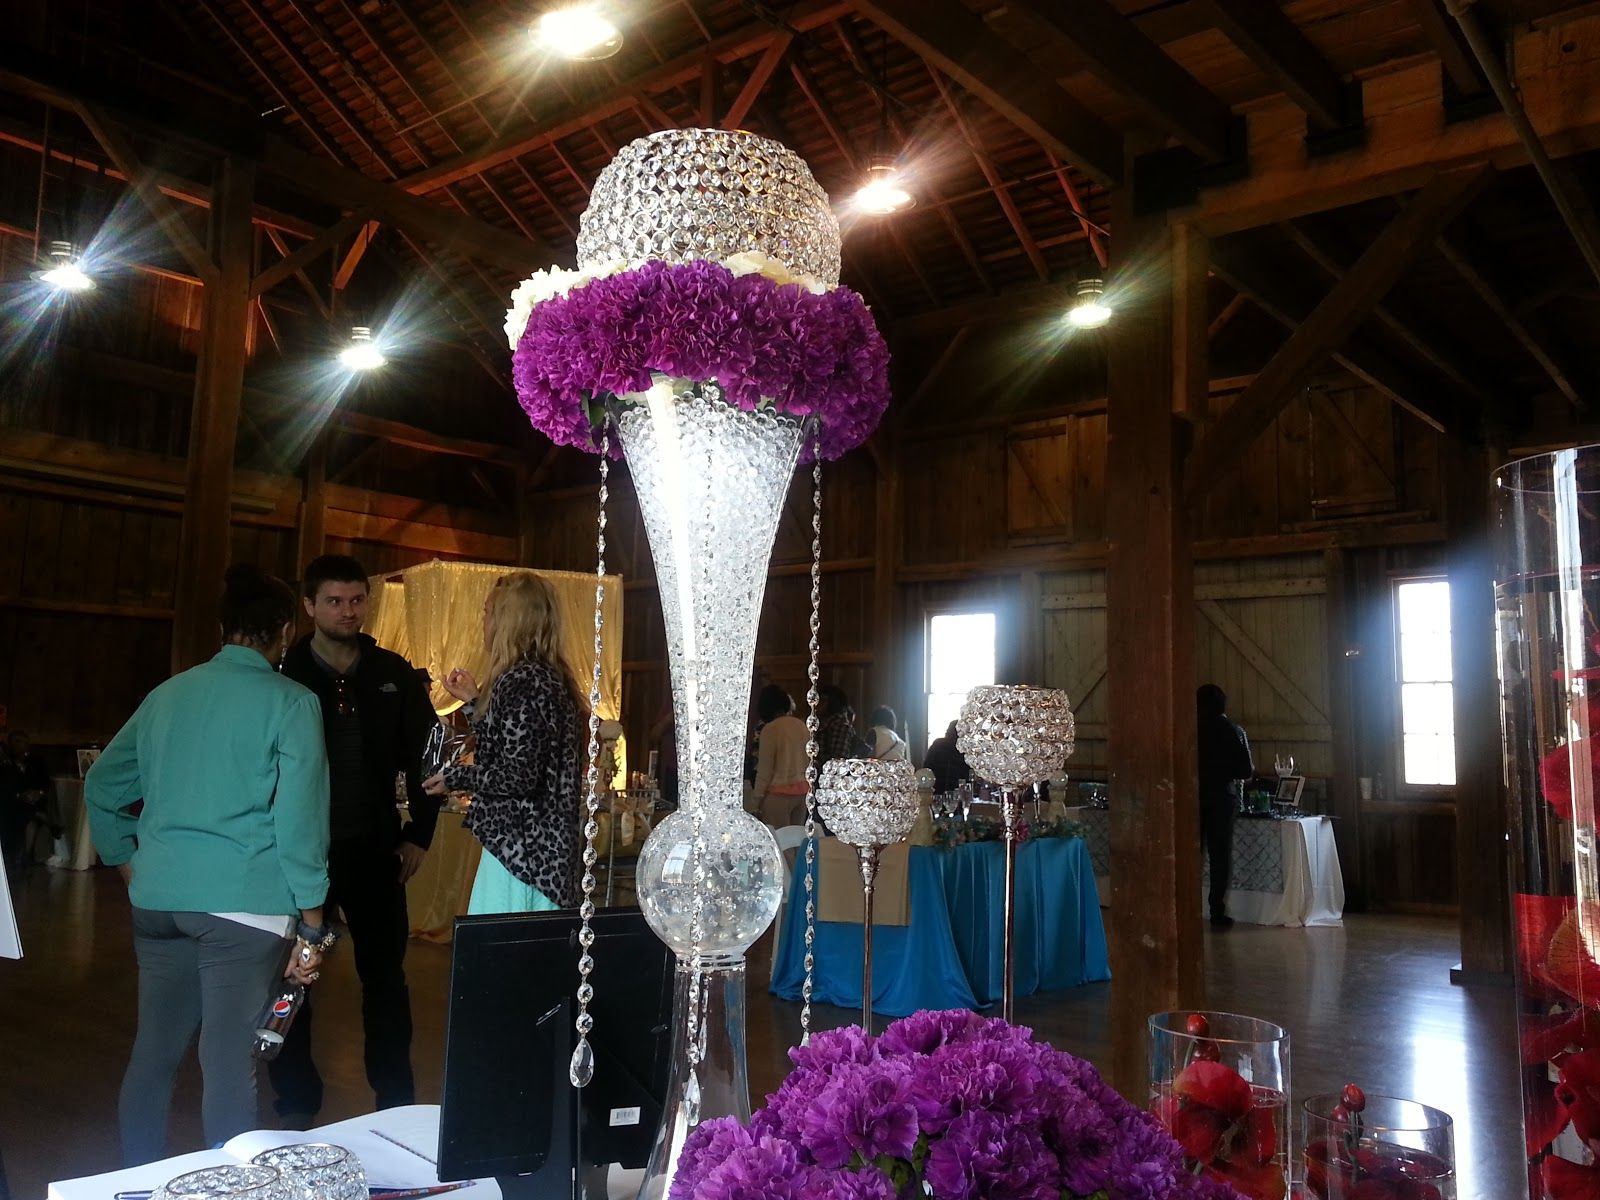 A Bride's B.F.F & New Inventory! Crystal centerpieces